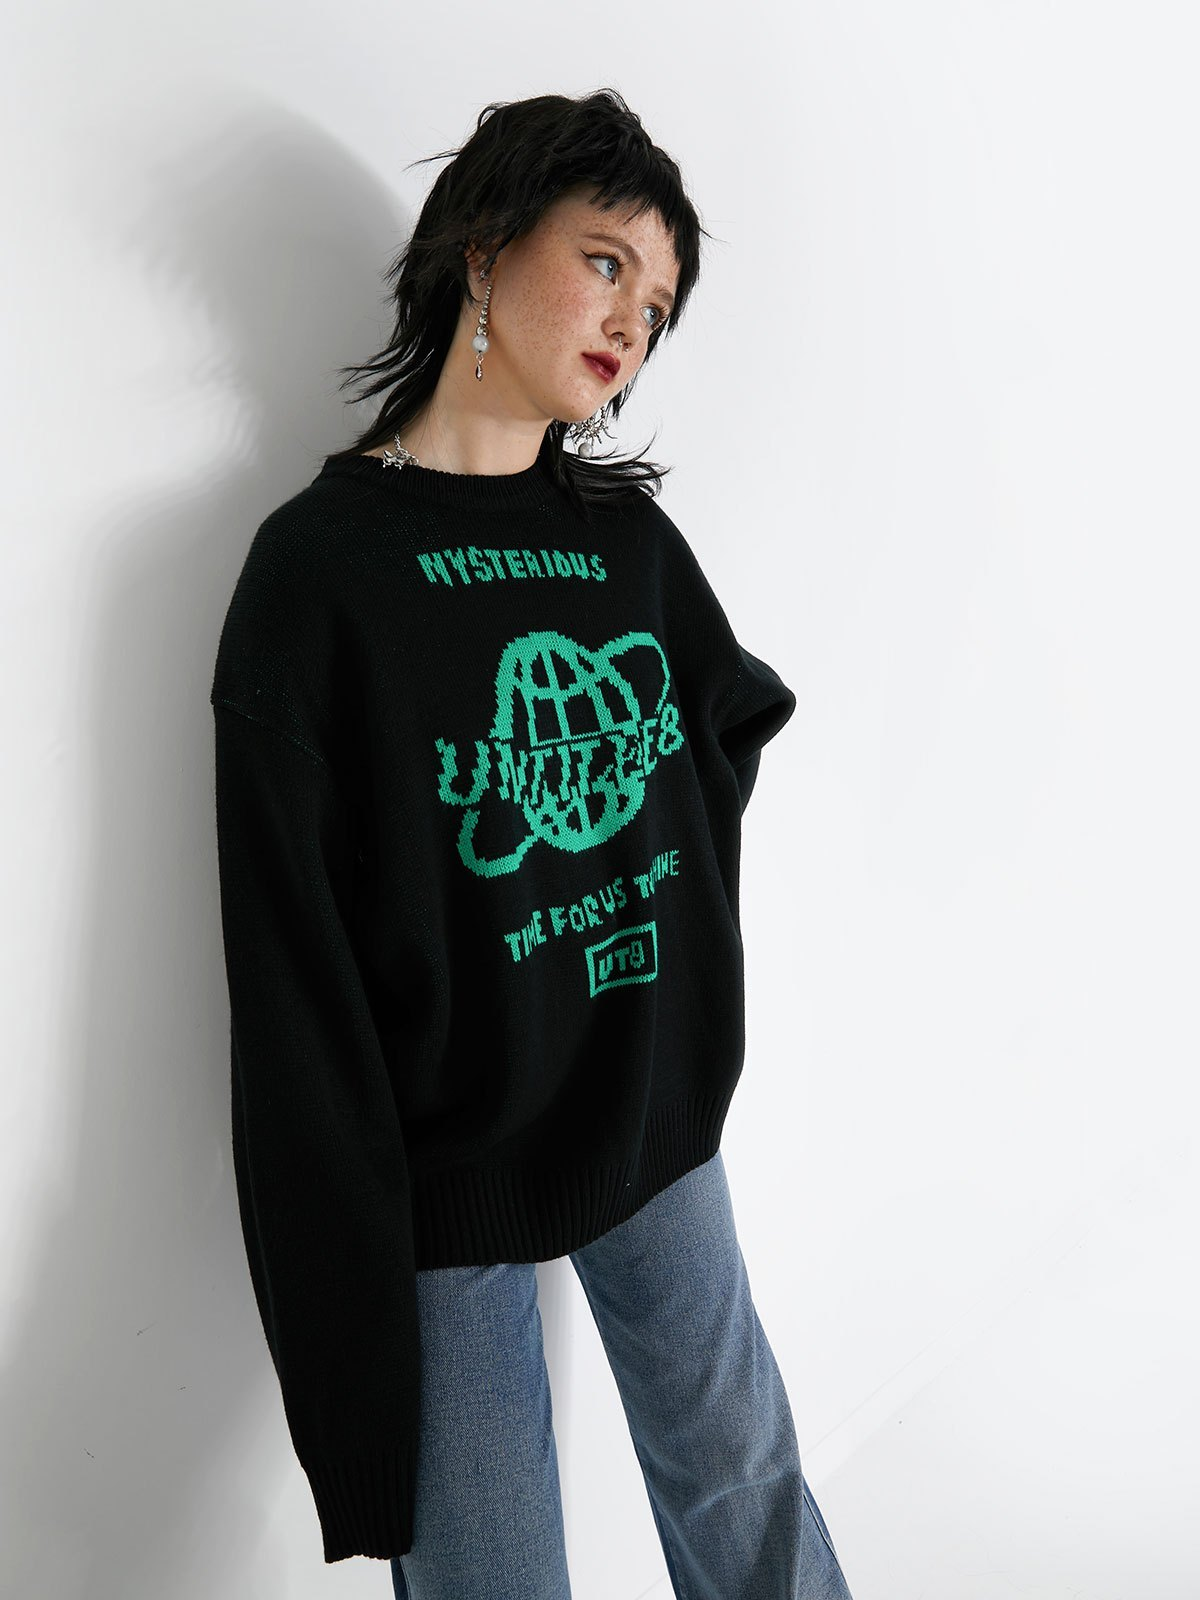 Oversized Mysterious Universe Sweater - Black ONE SIZE